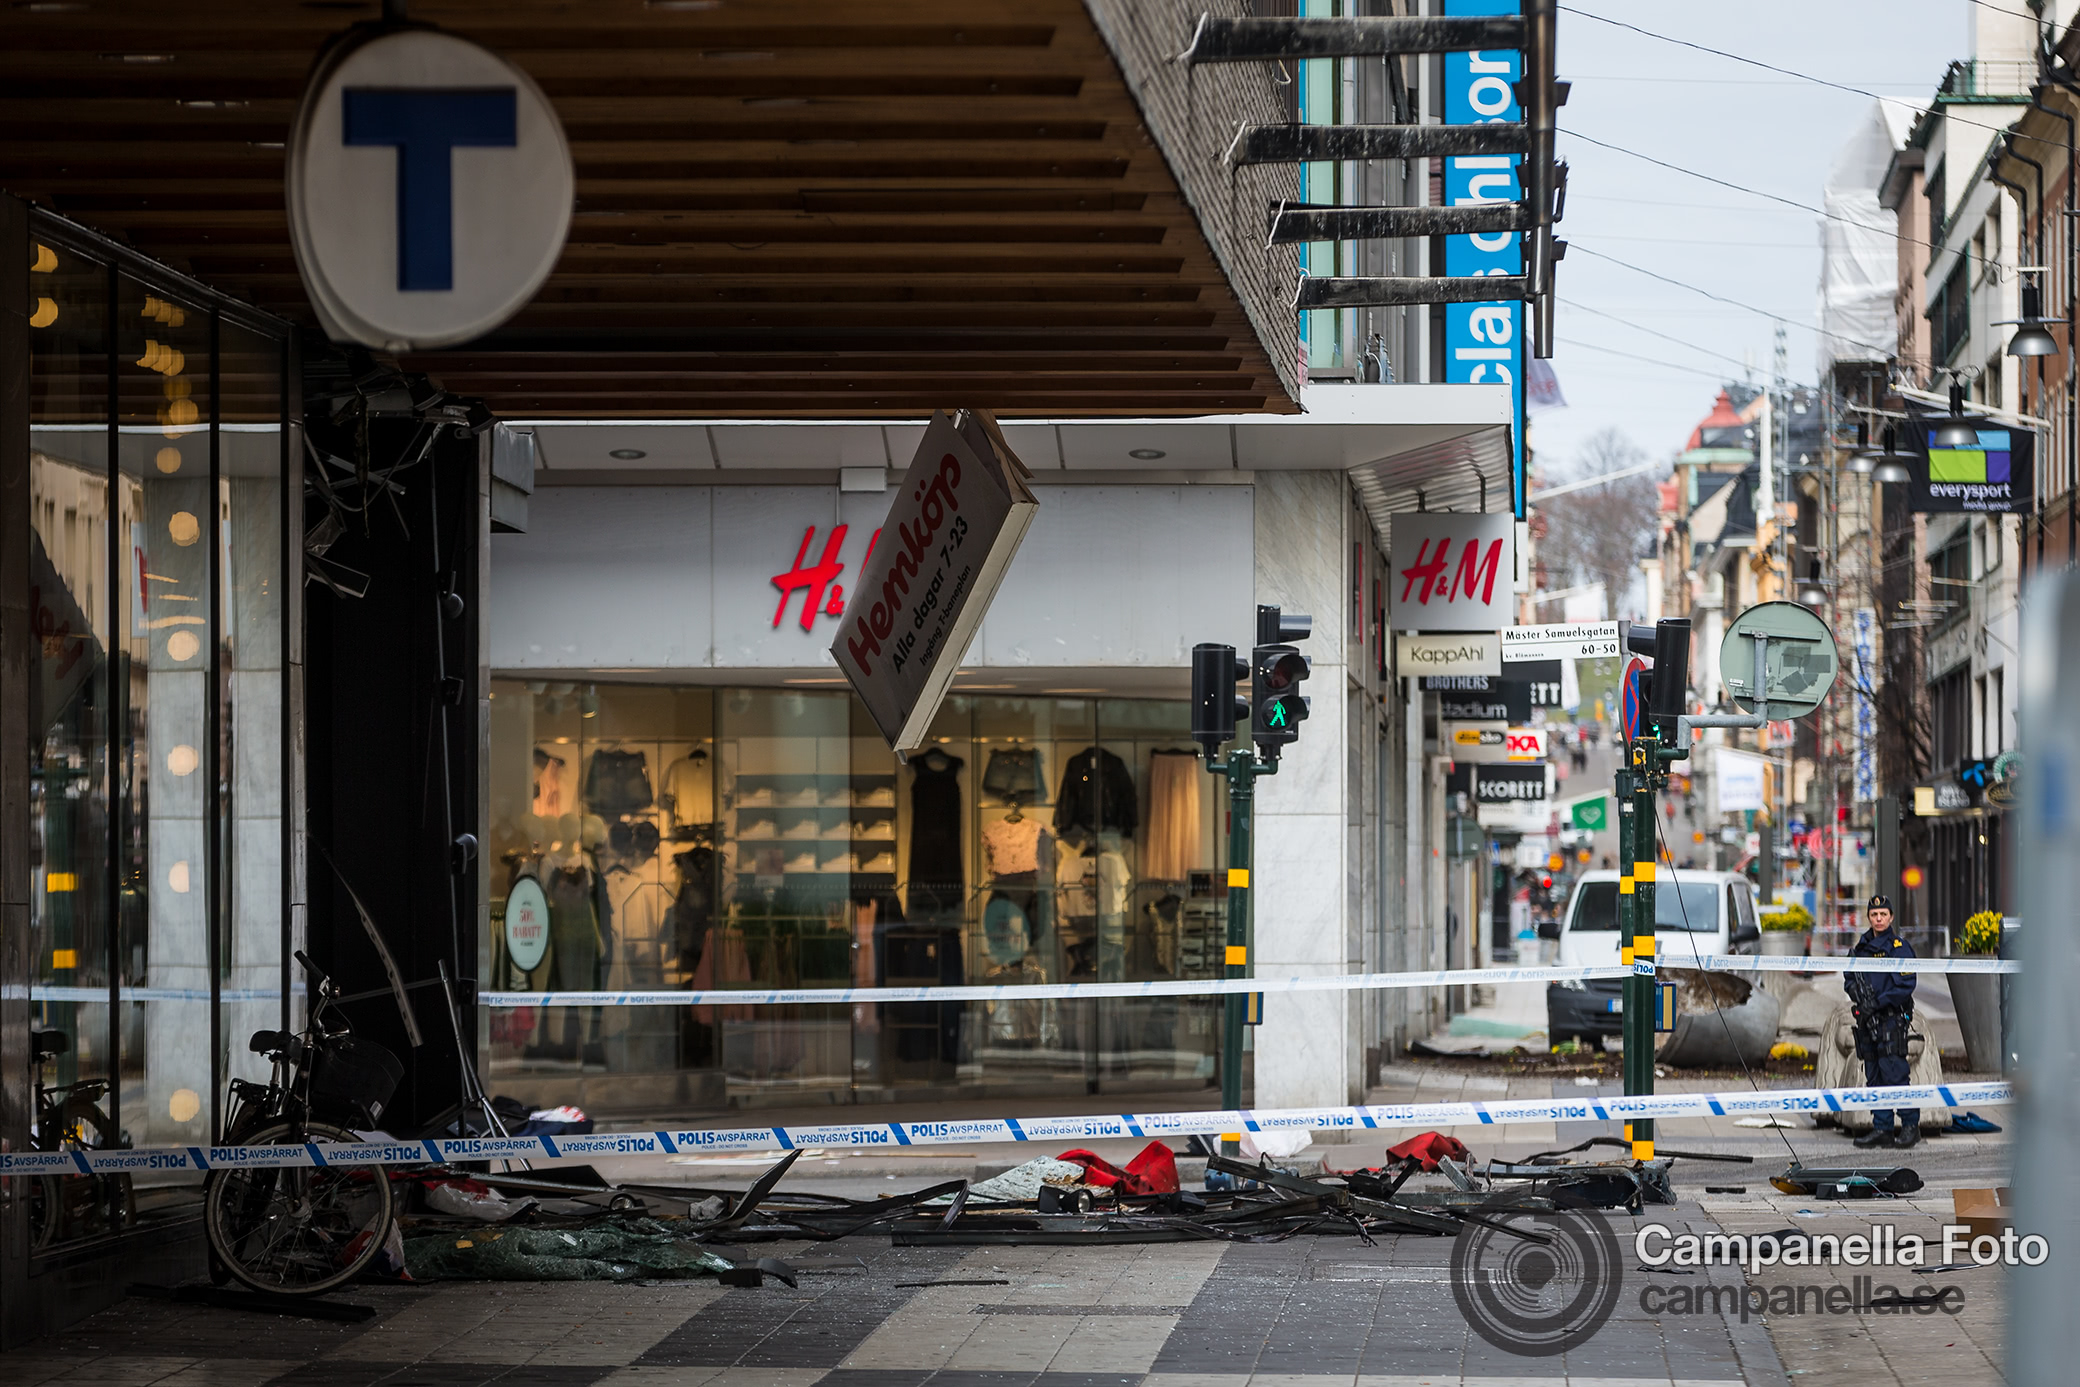 Aftermath of the Stockholm terrorist attack - Michael Campanella Photography